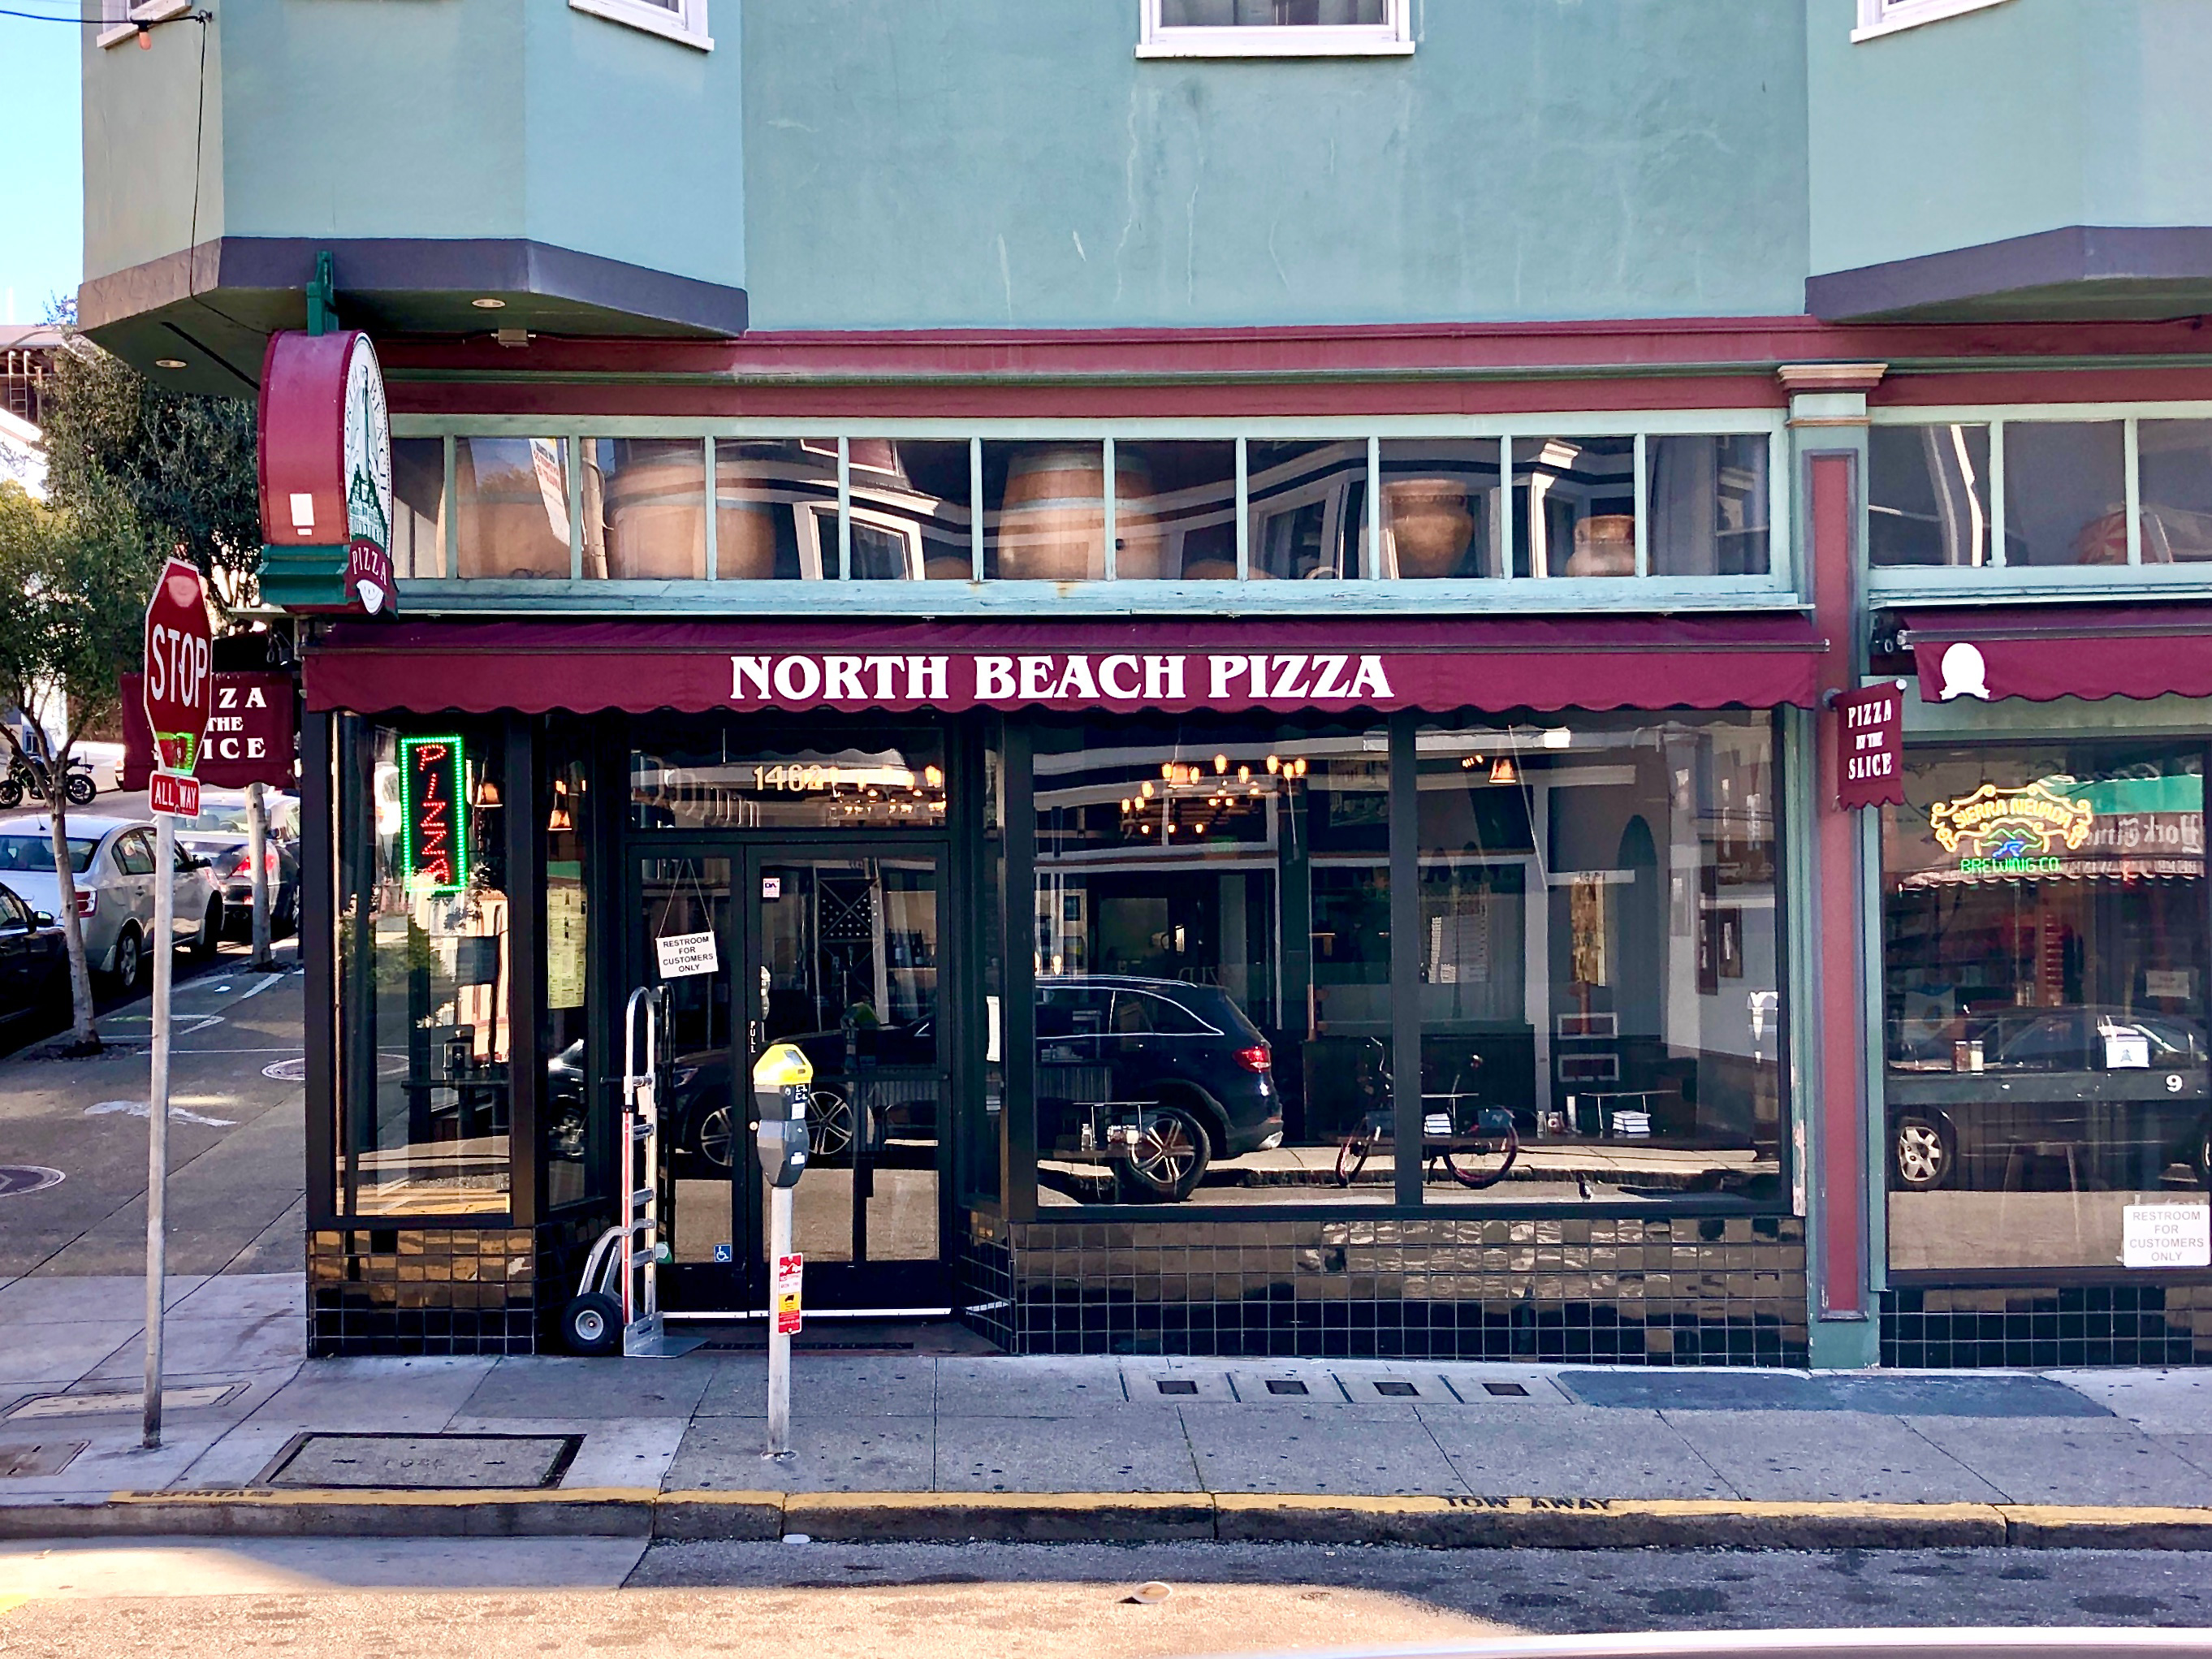 North Beach Pizza on Grant Ave